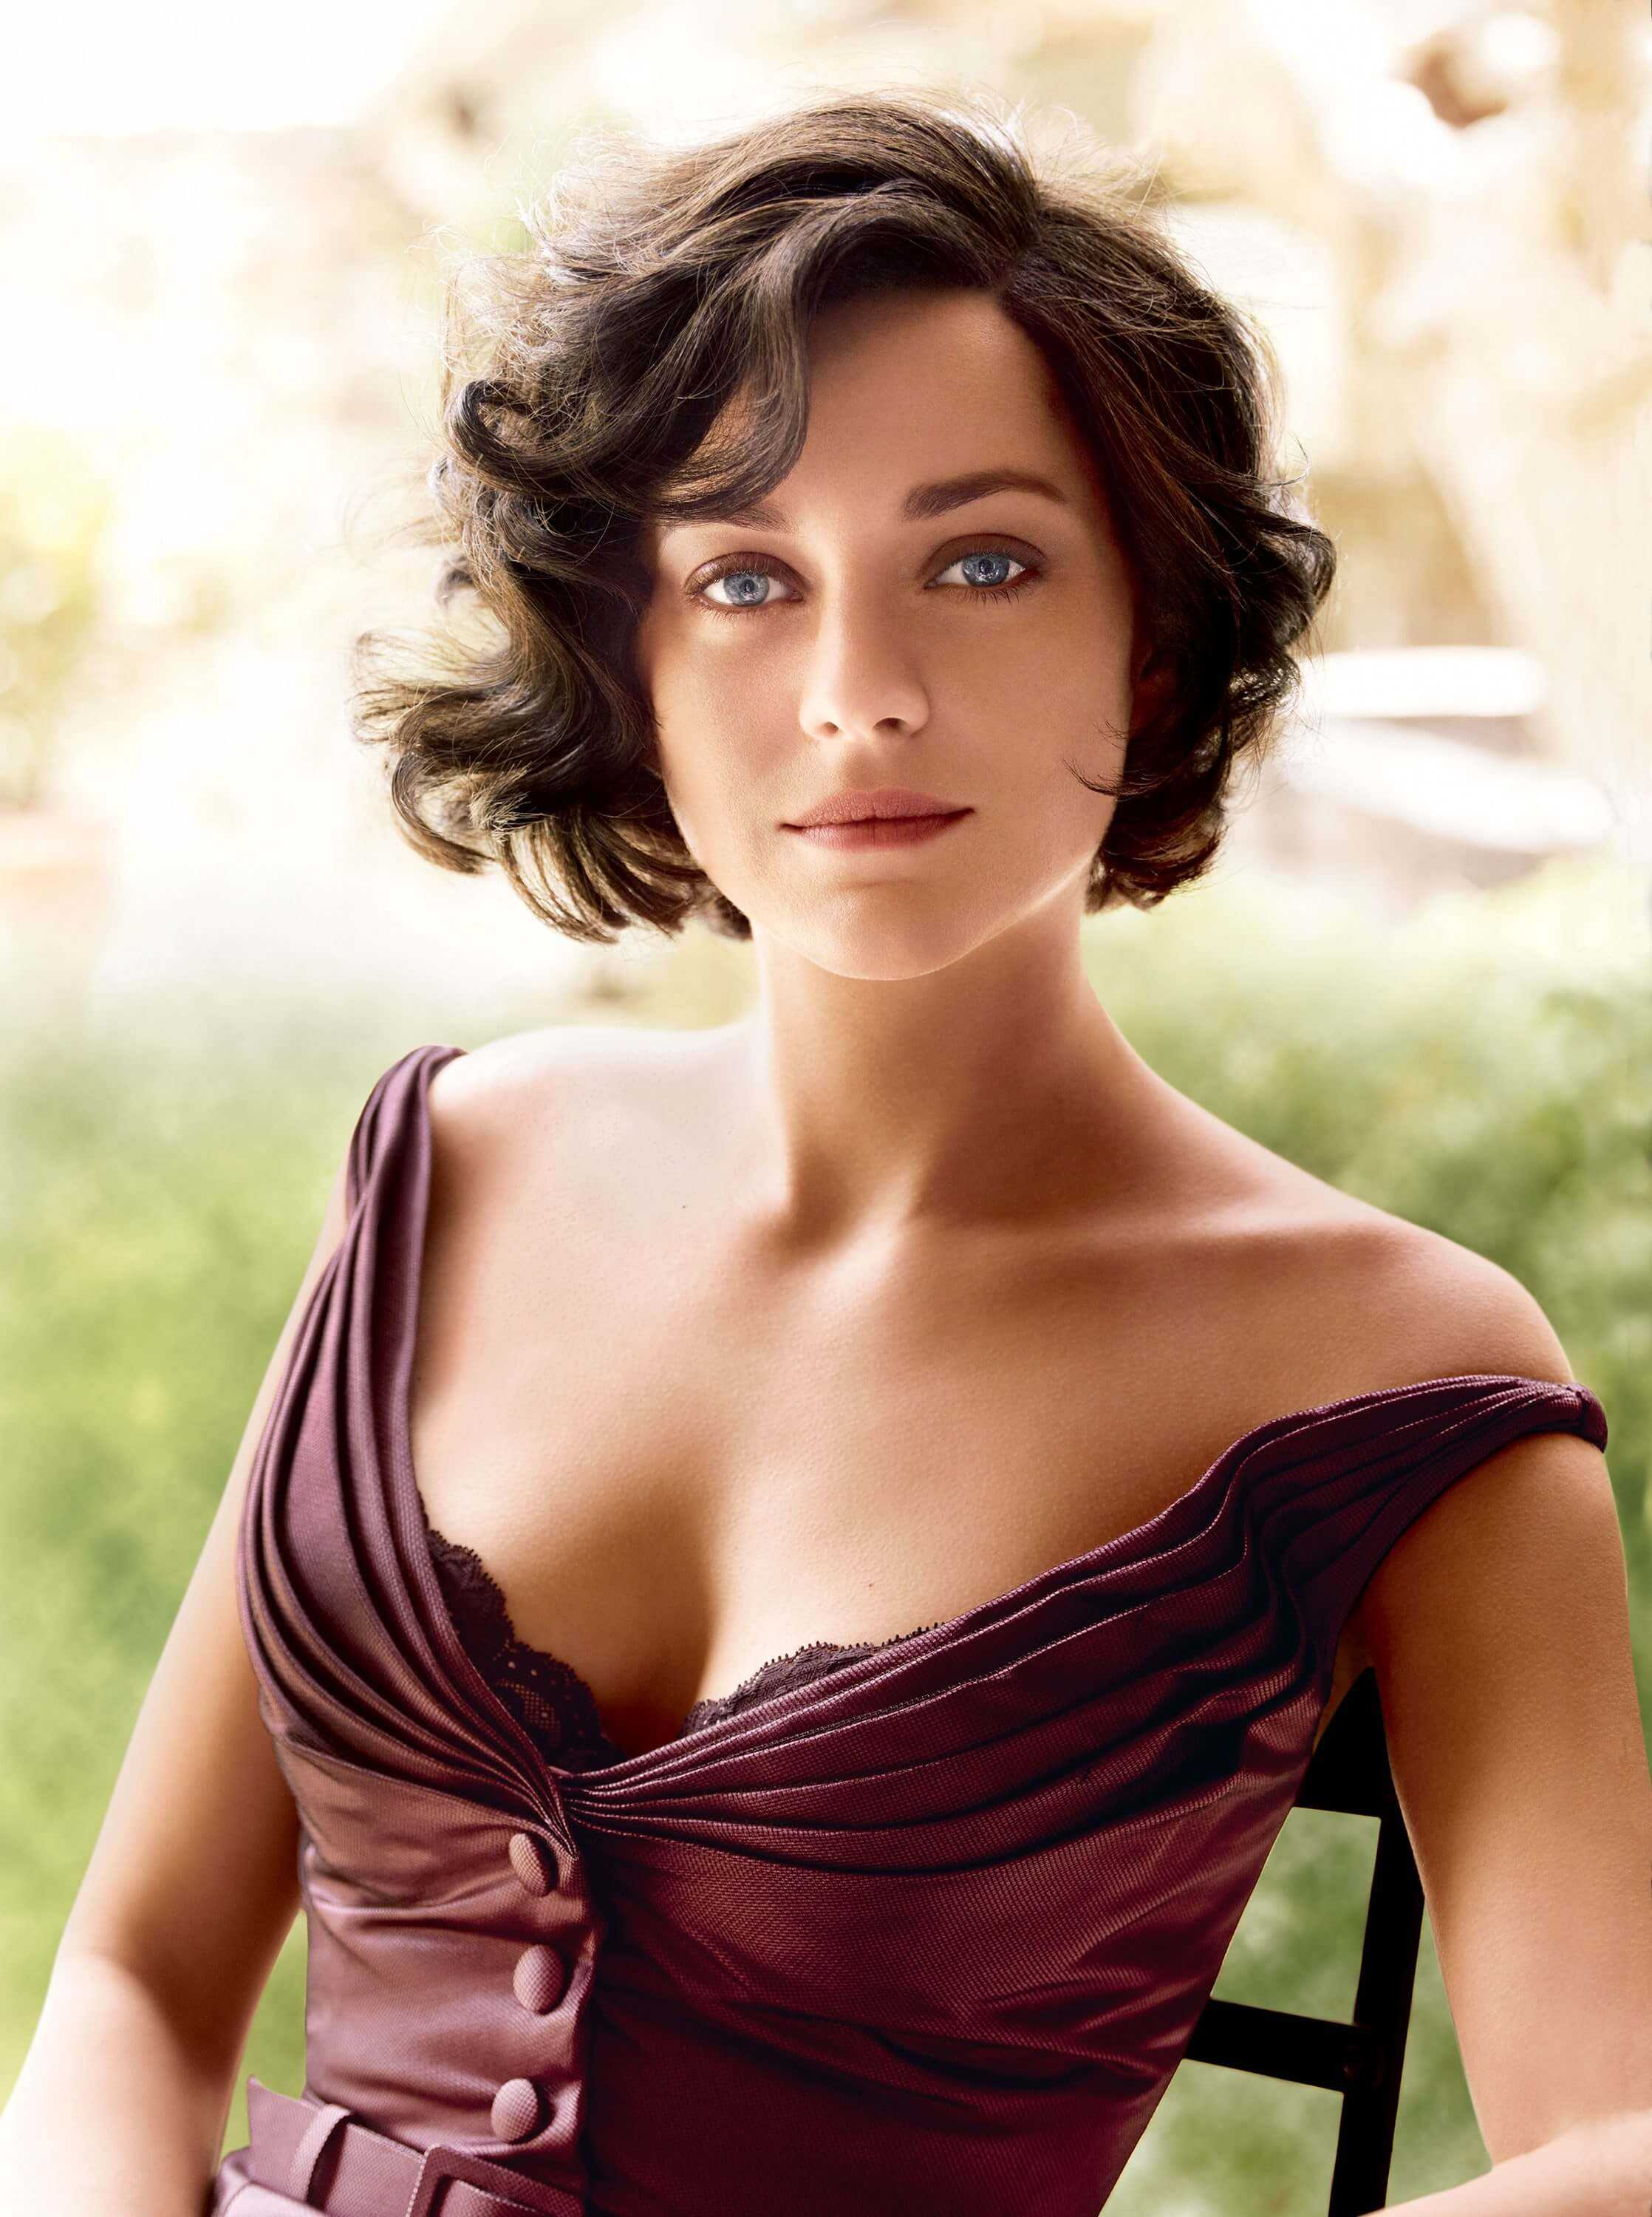 Marion Cotillard sexy pictures